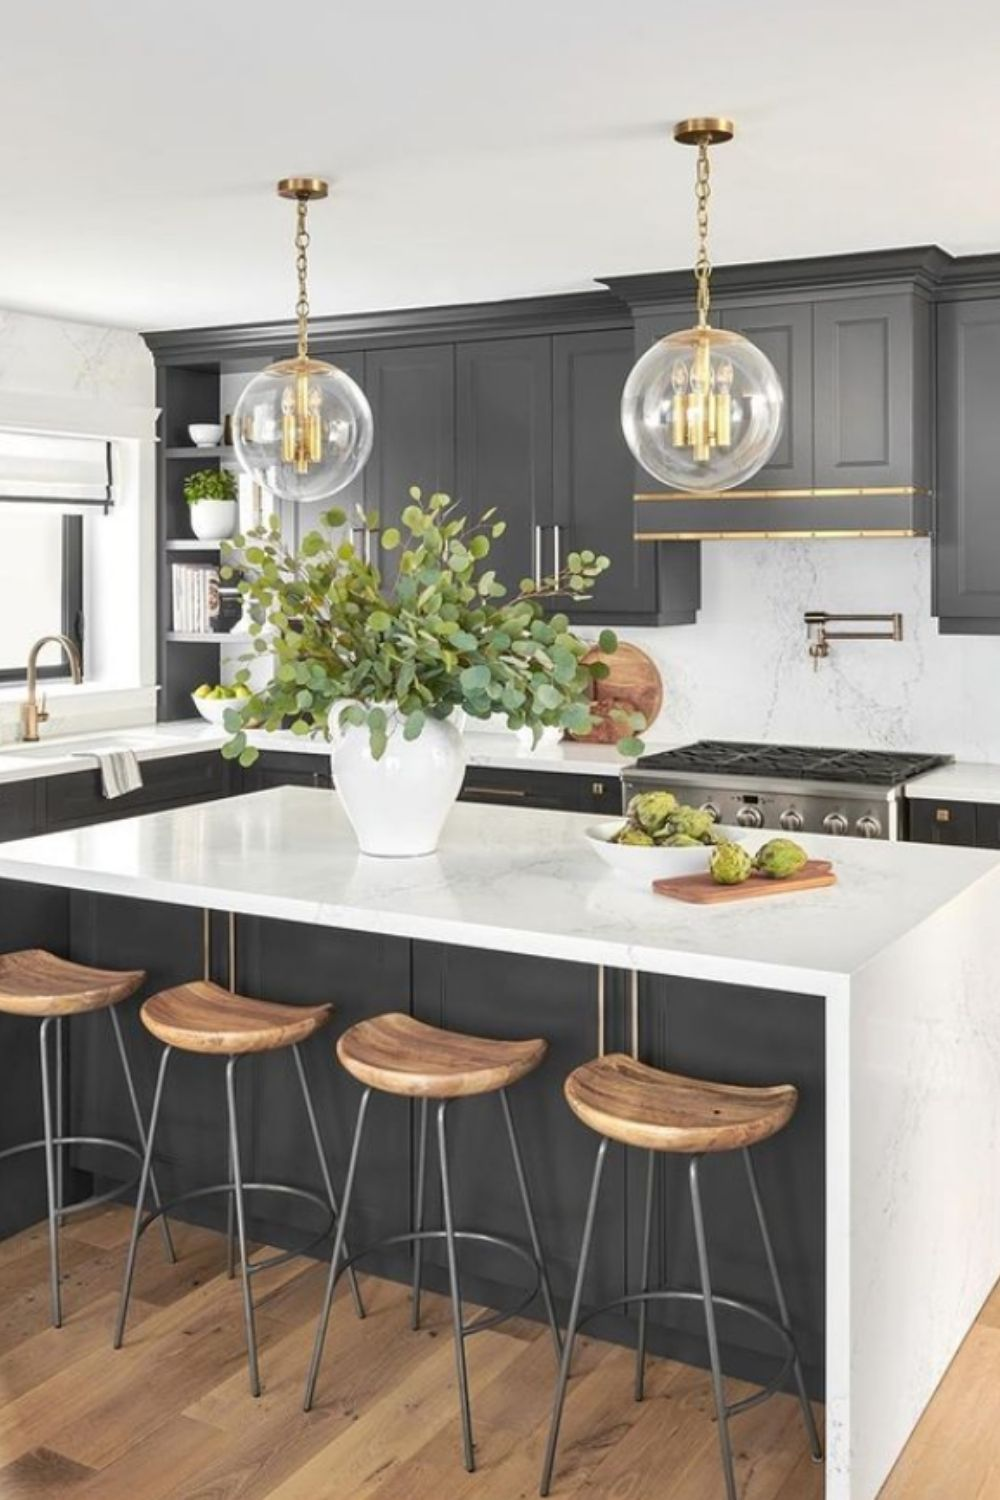 Any room needs an accessory that takes it to the next level, and an oversized pendant is the perfect choice.